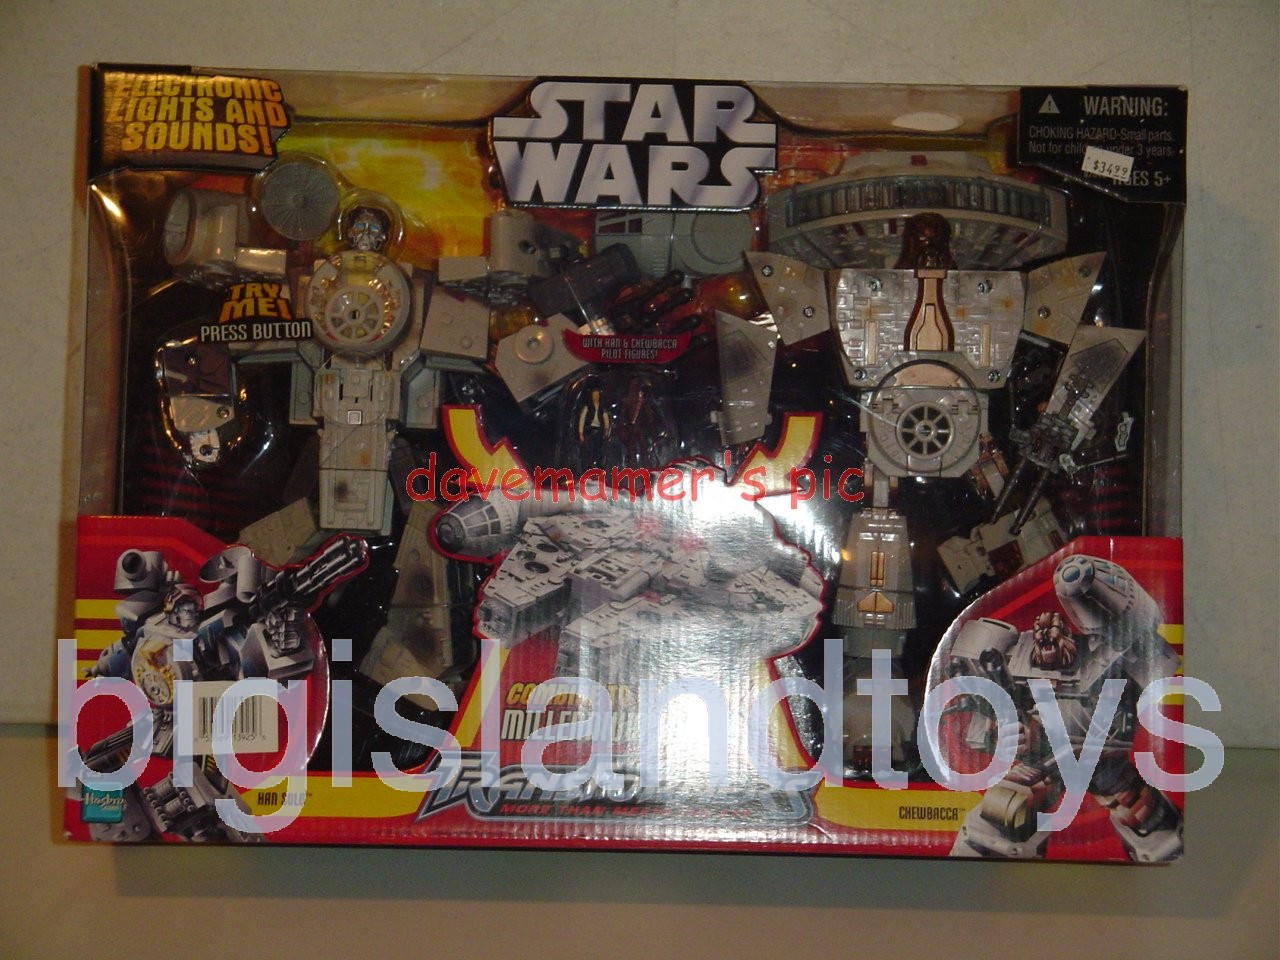 Transformers Crossovers Star Wars   Han Solo and Chewbacca / Millennium Falcon